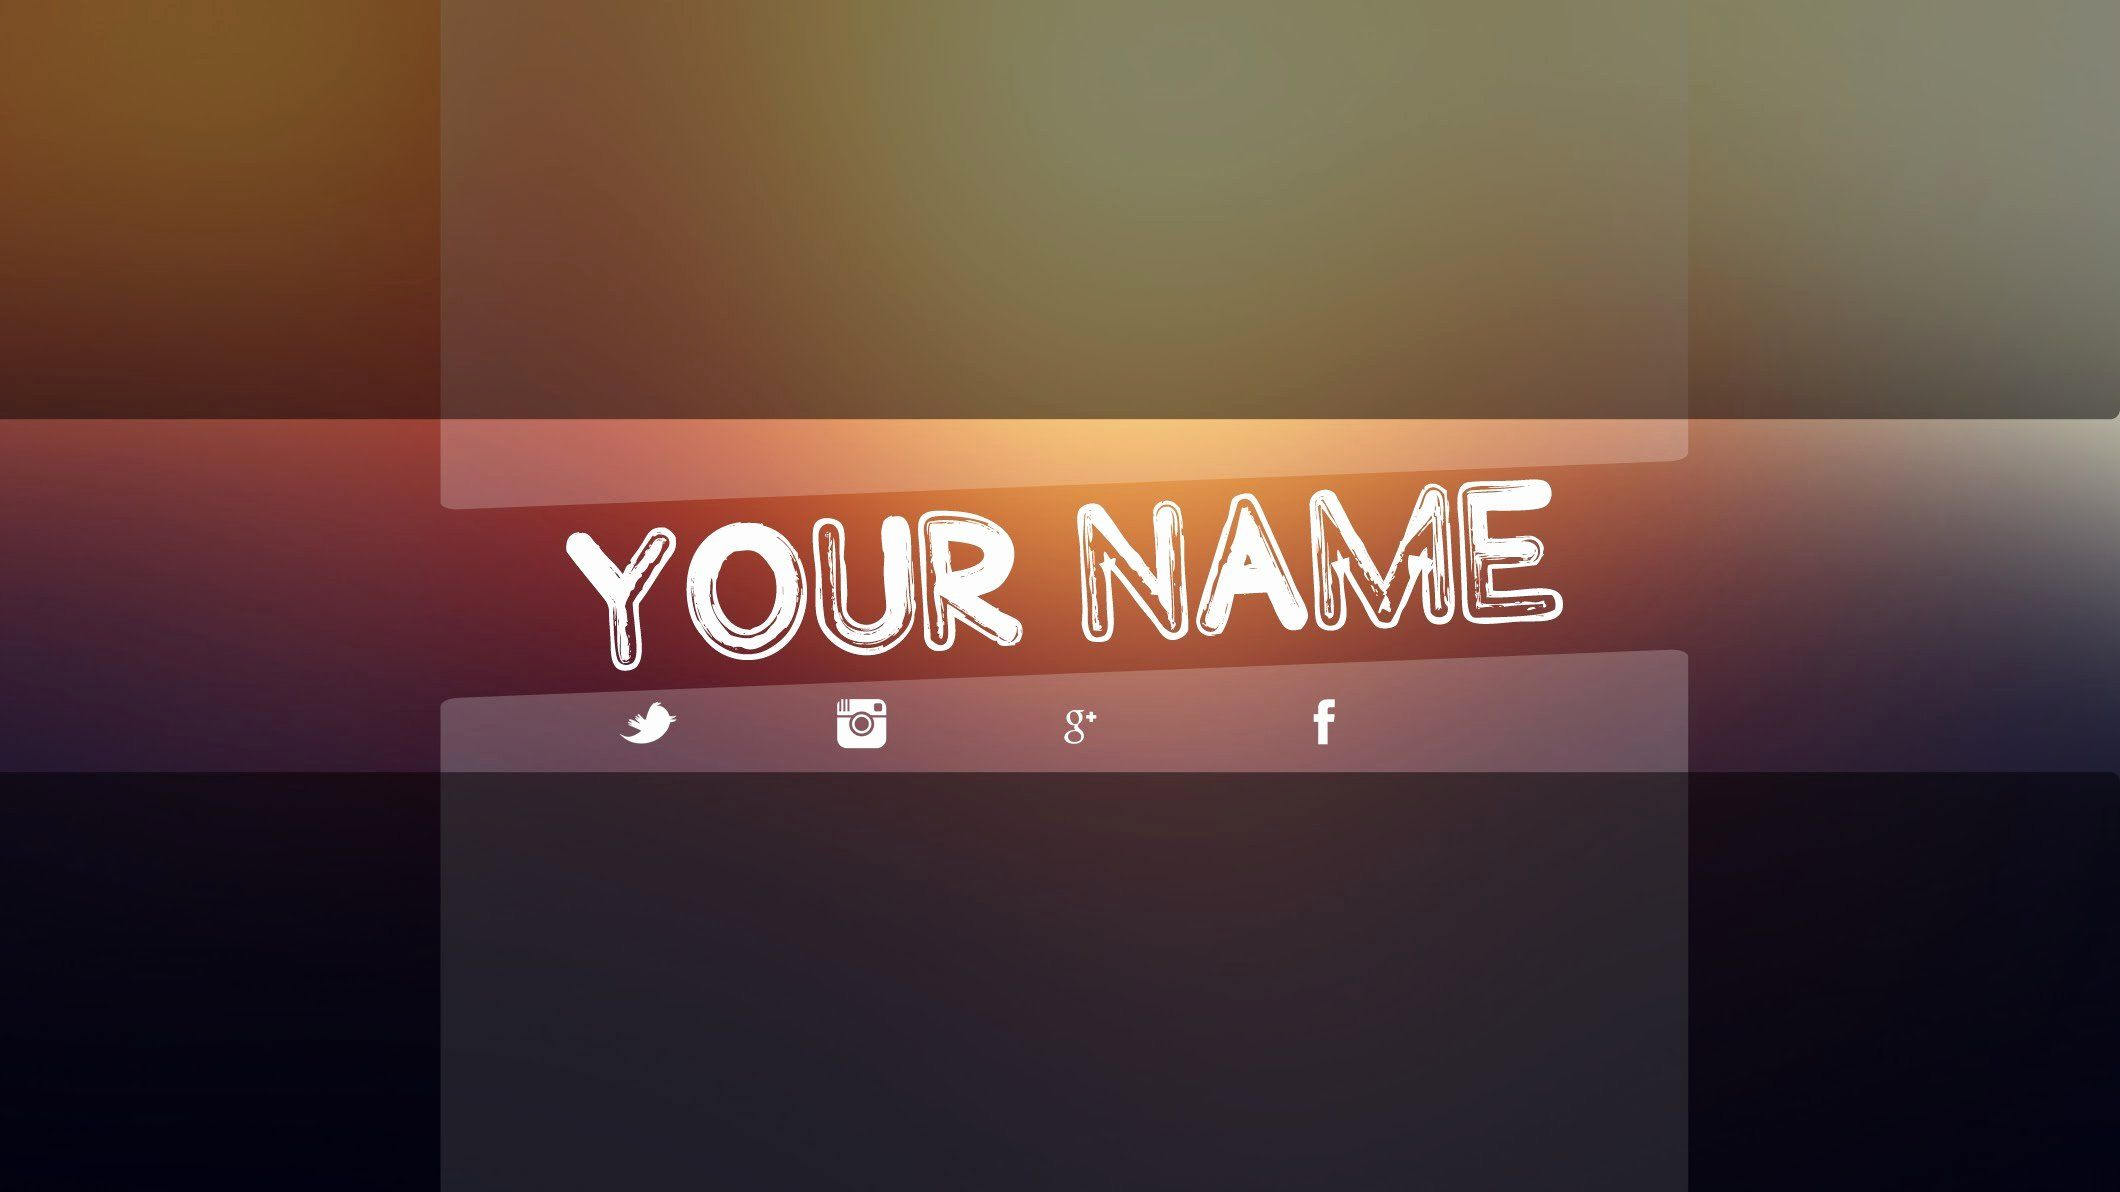 New Youtube Banner Template Psd Free in 2020 Banner